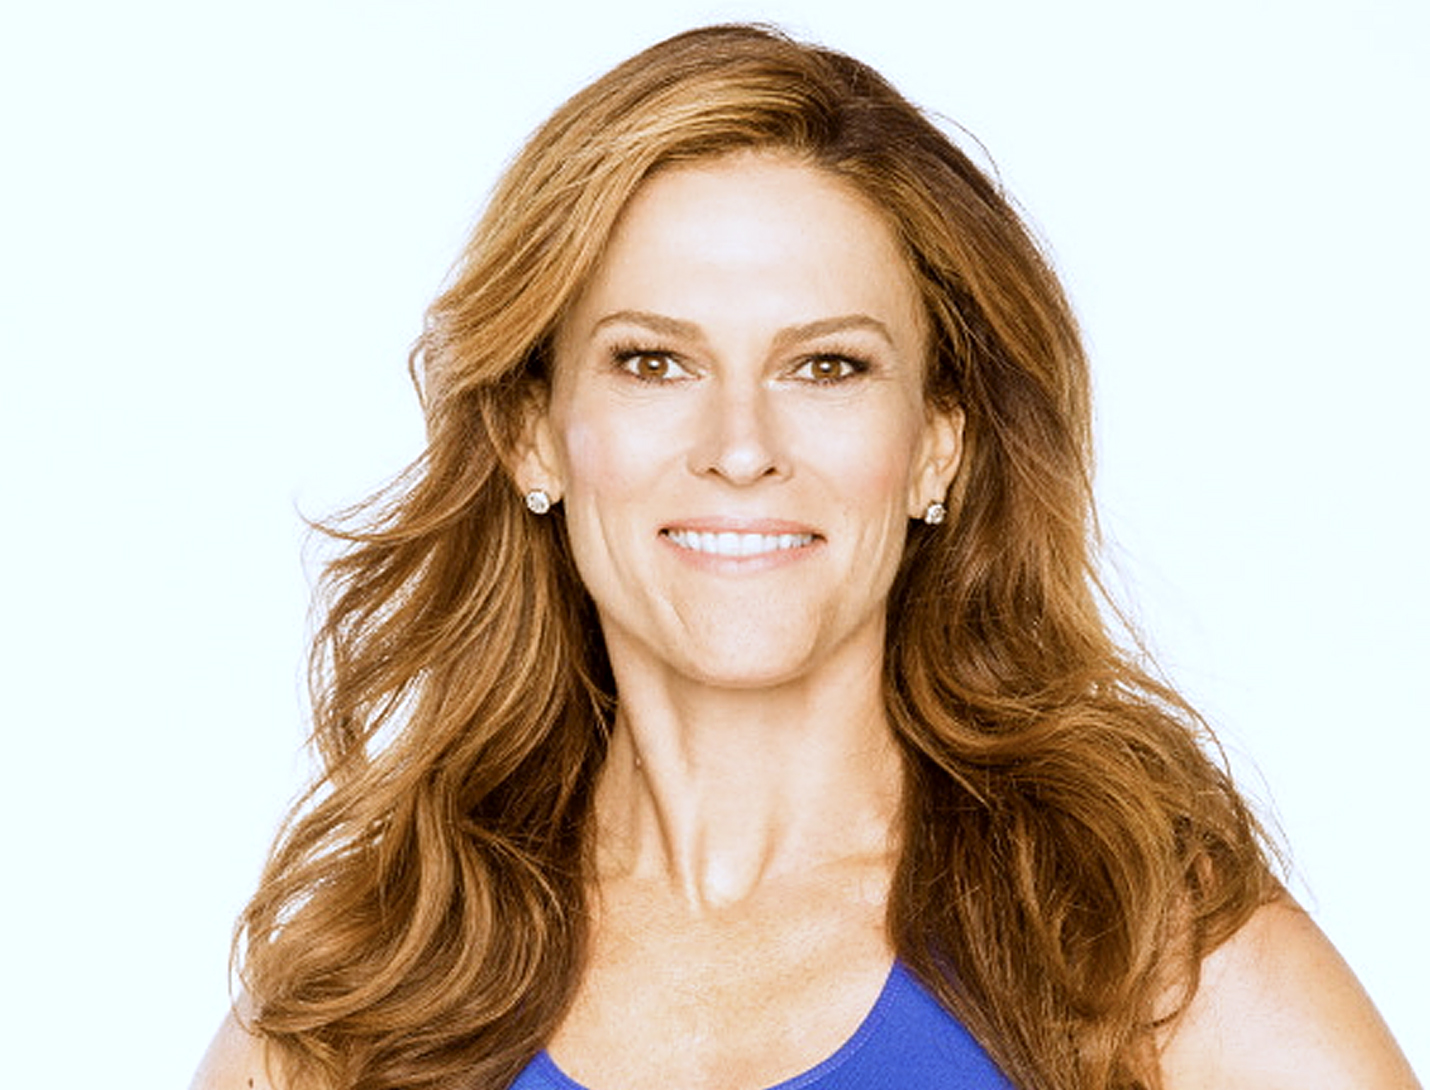 Michelle Lovitt - Fitness Tips for Women Over 45